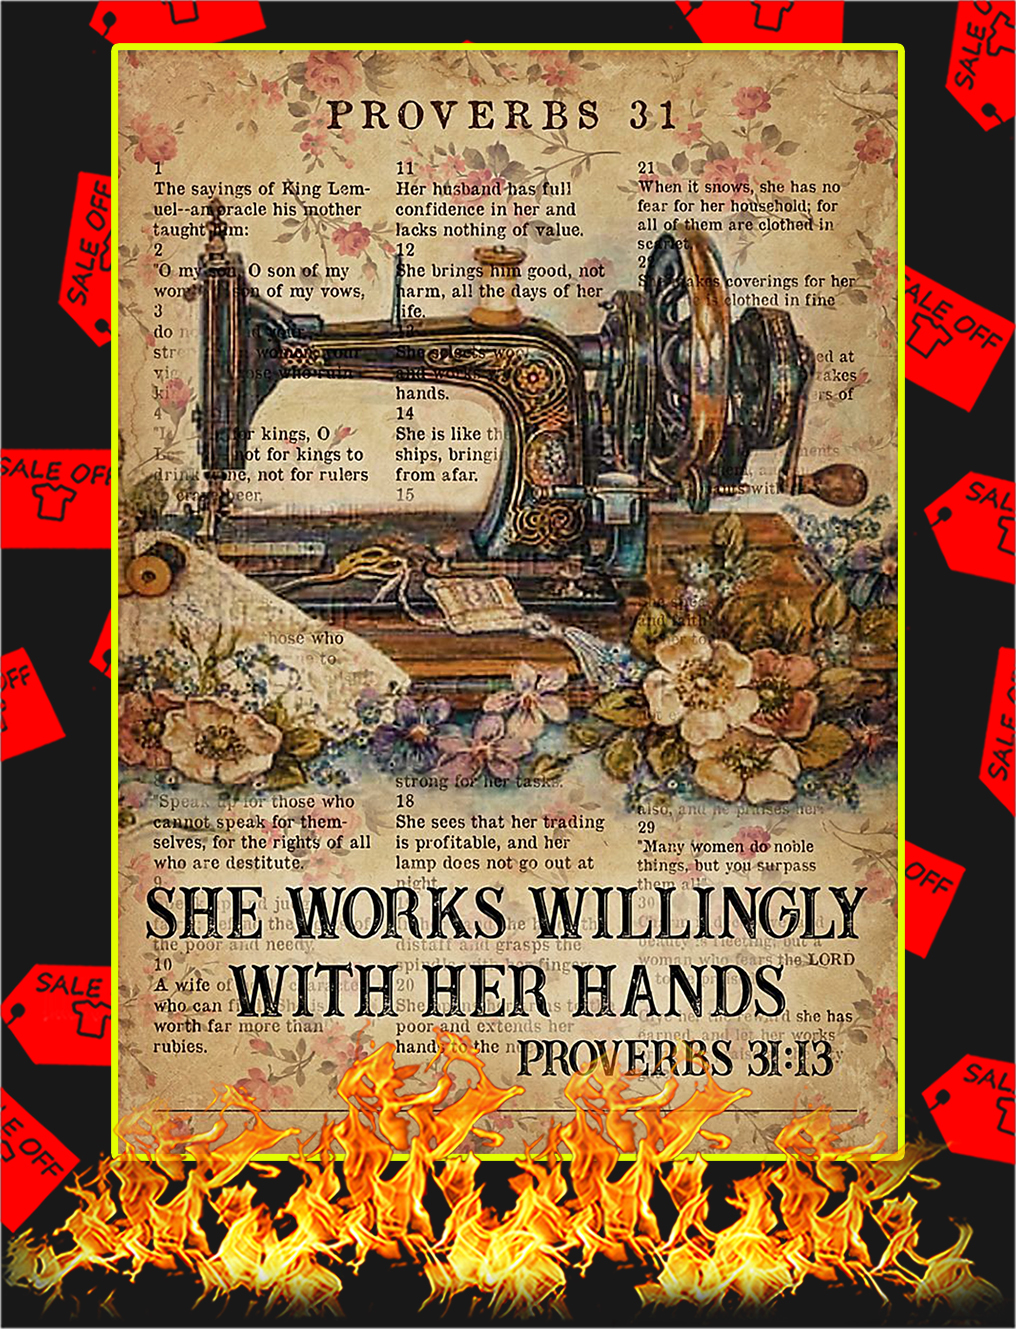 Sewing She works willingly with her hands poster - A4